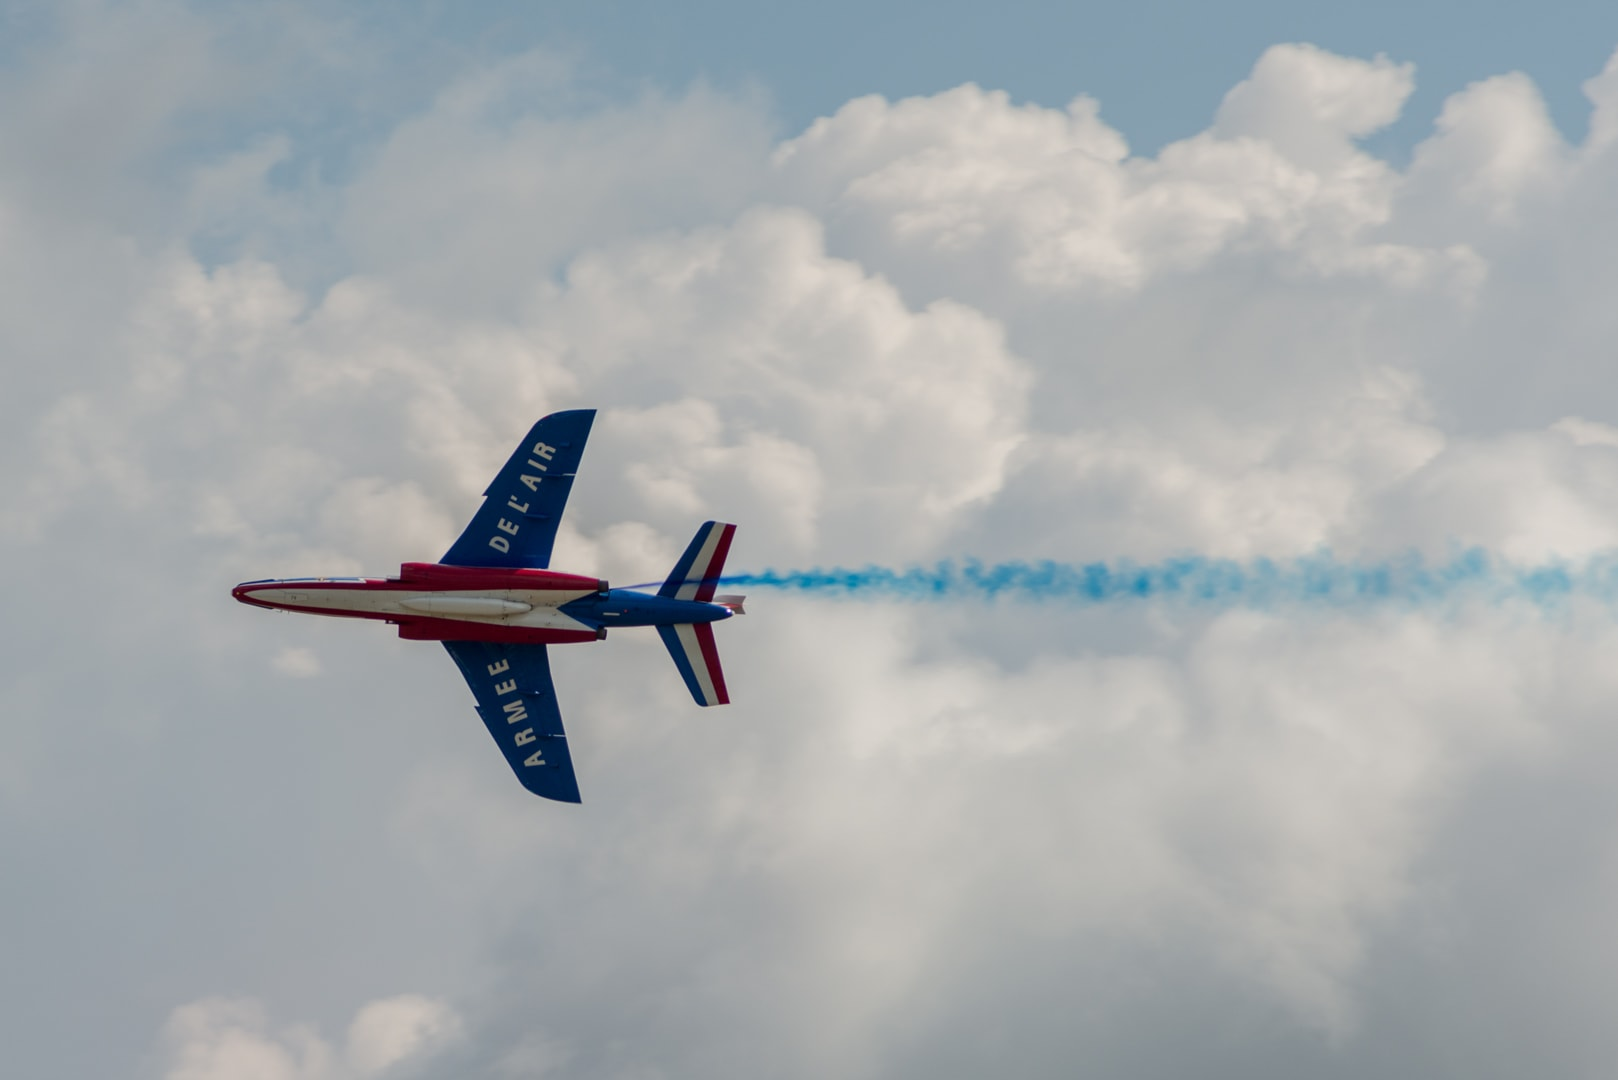 Photo de la patrouille de france n°8